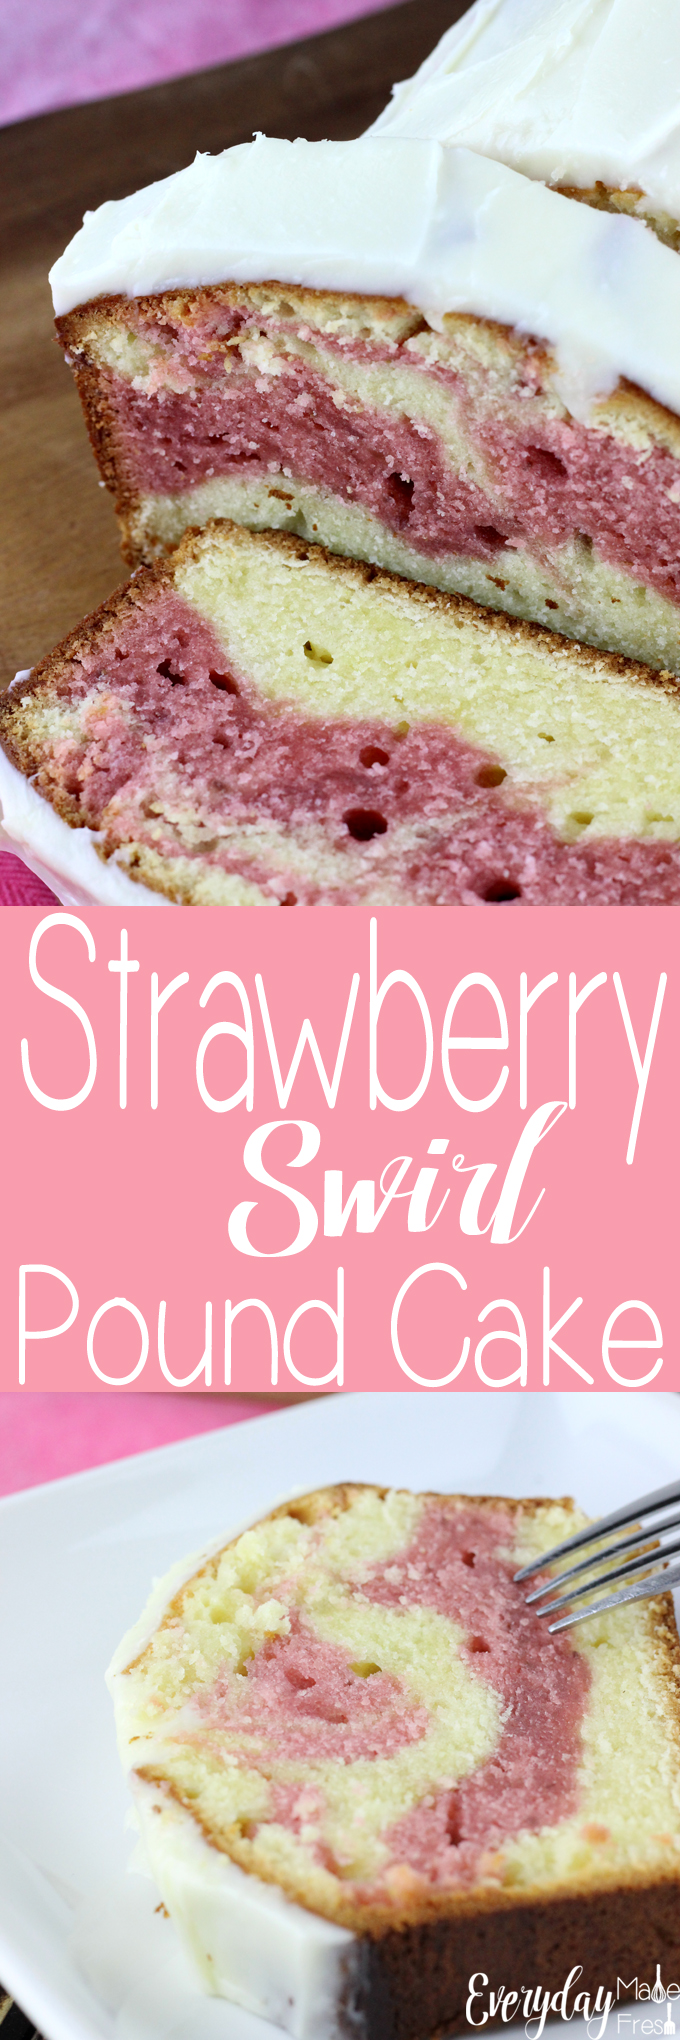 This Strawberry Swirl Pound Cake is so easy to make from scratch, and it topped with a delicious cream cheese frosting.  | EverydayMadeFresh.com